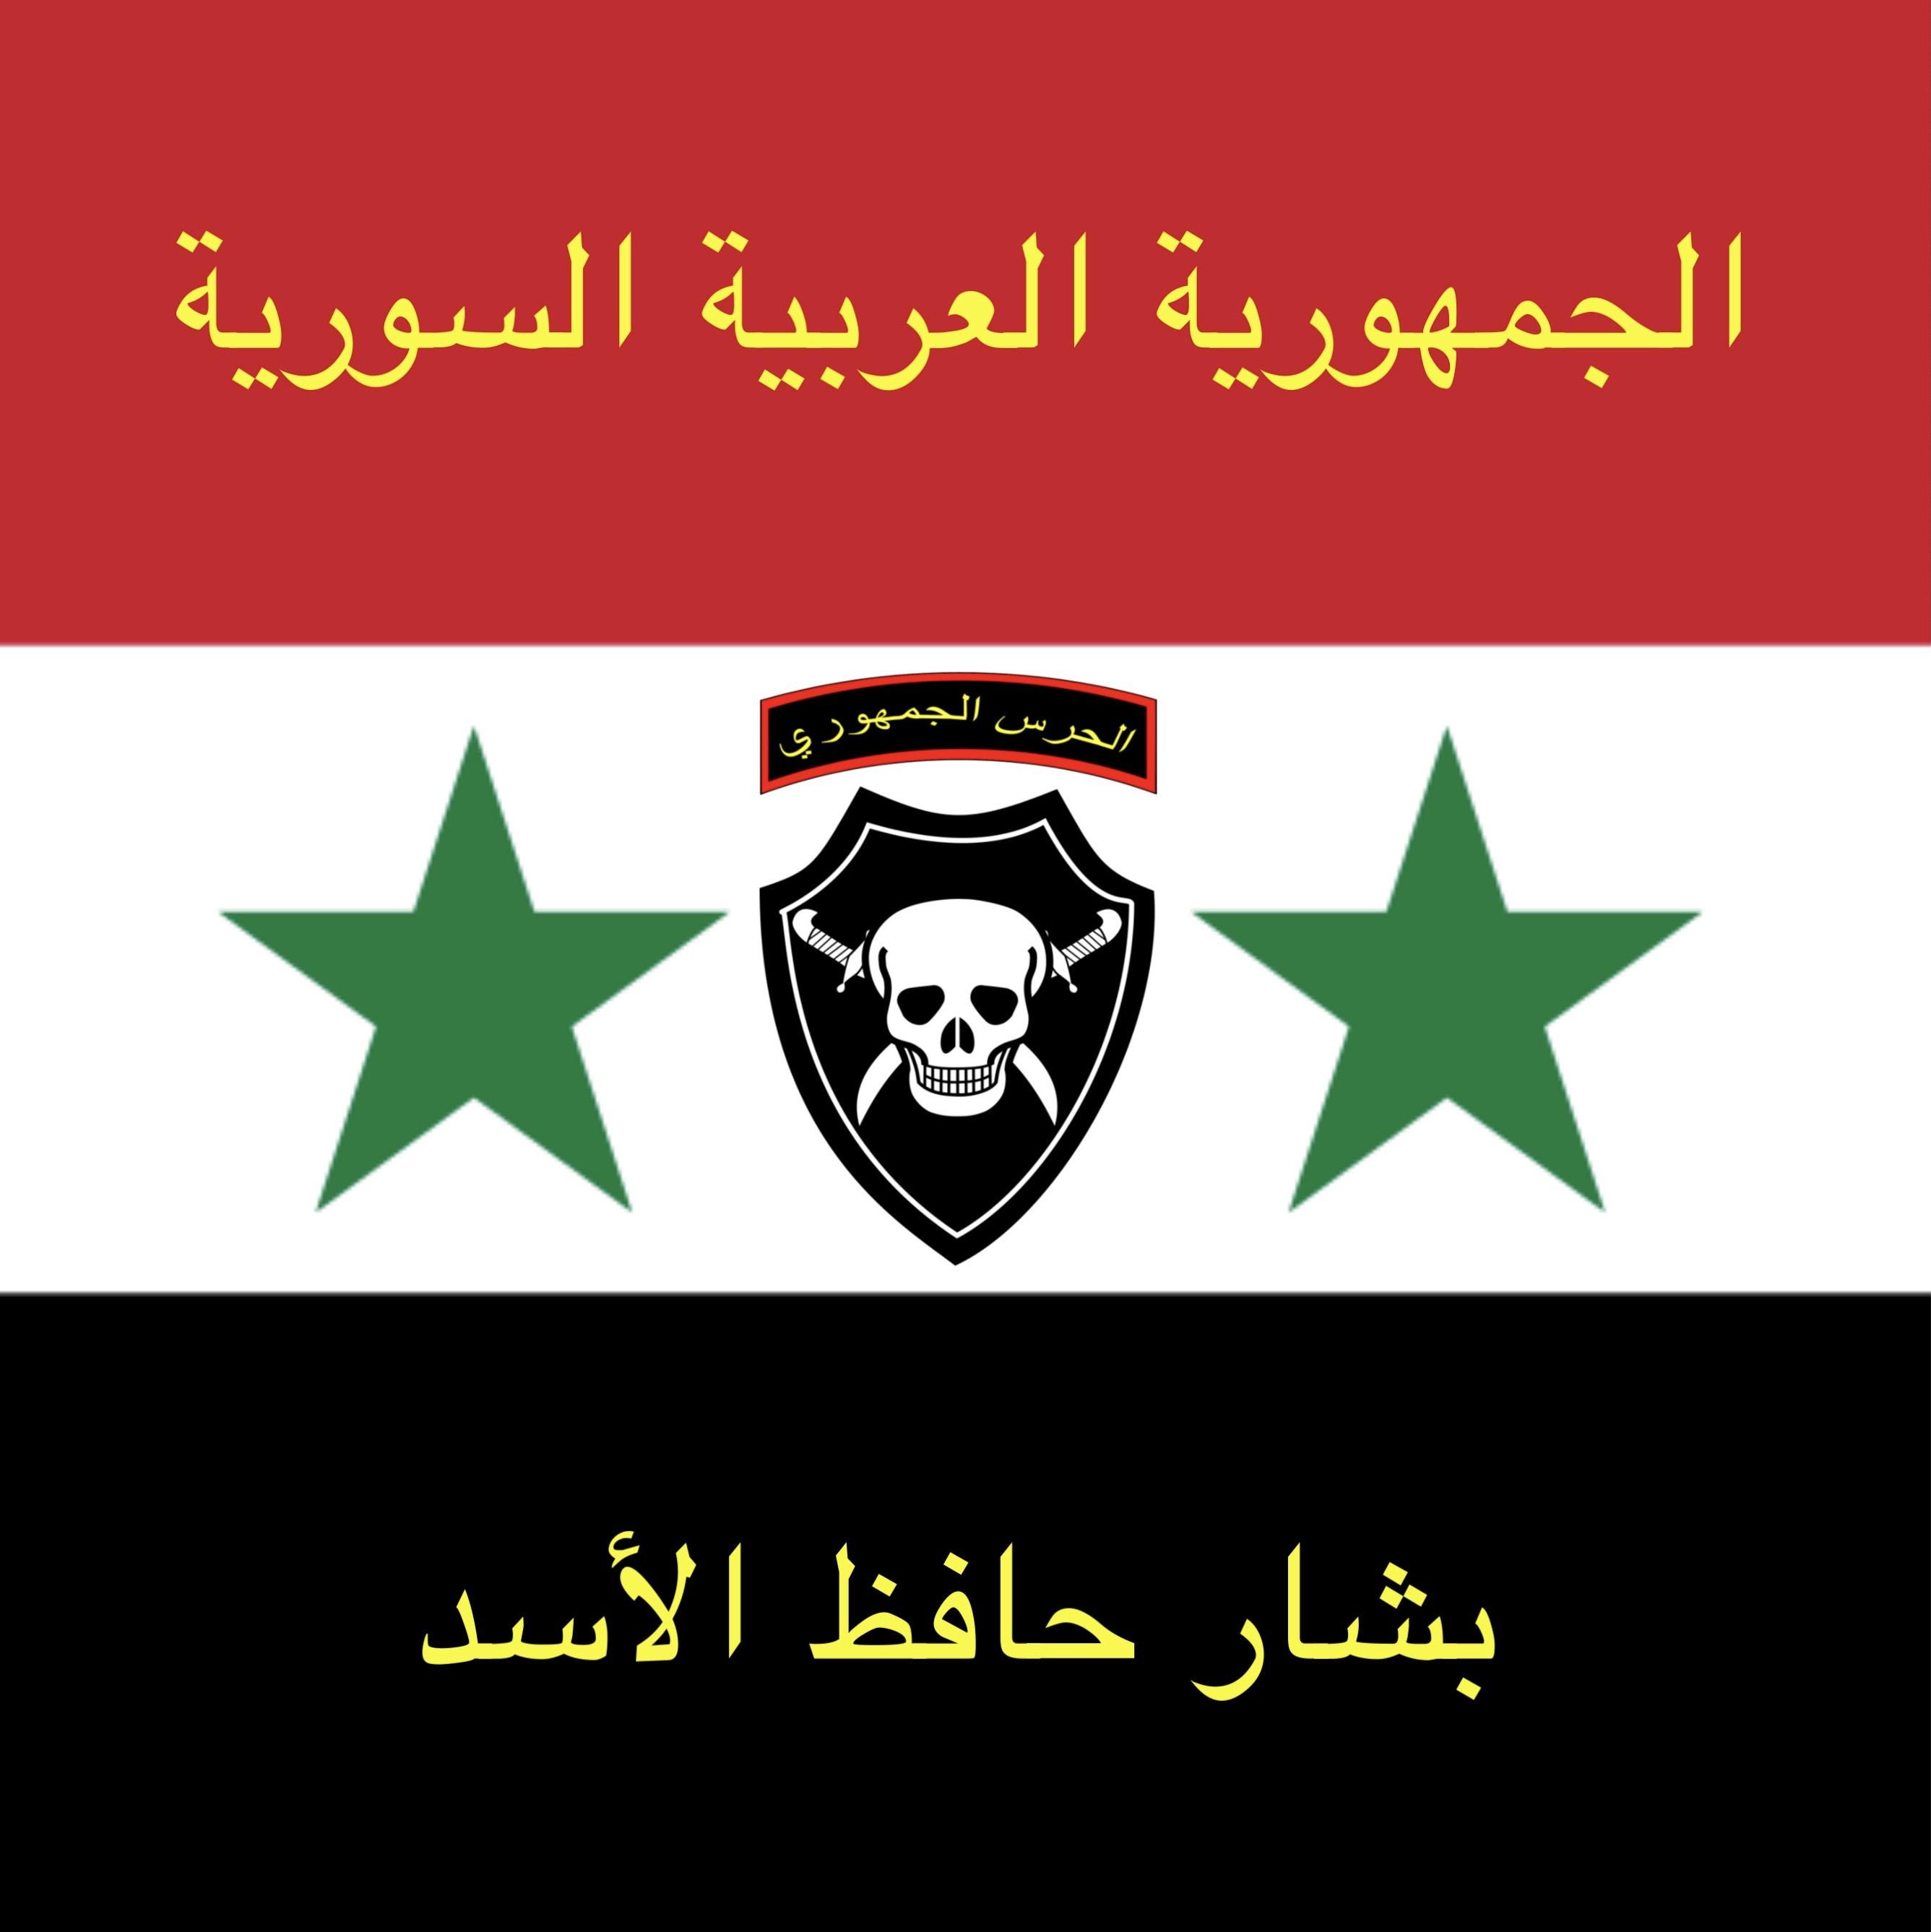 Custom Flag I Made In Picsart The Logo Is Of The Syrian Republican Guard The Top Text Says Syrian Arab Republic And The Bottom Text Says Bashar Hafez Al Assad Syriancirclejerkwar